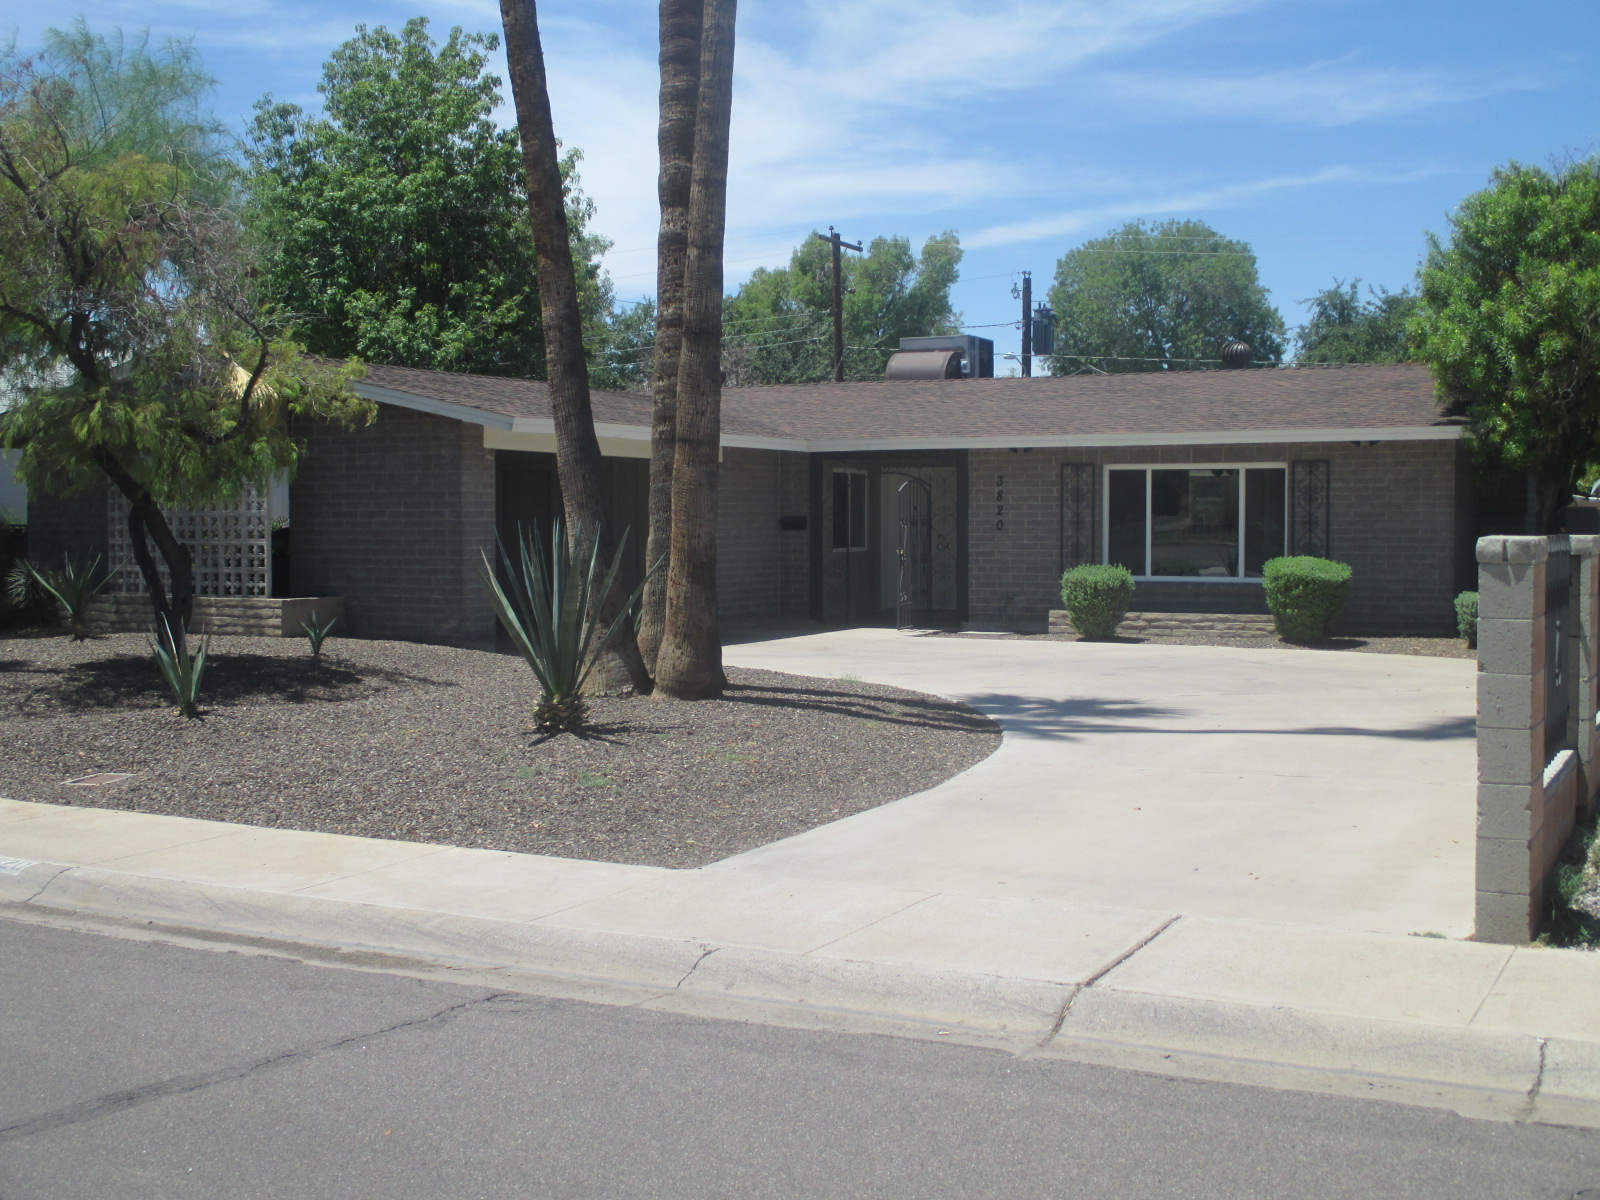 6 bedrm house for rent tempe az krk realty and management